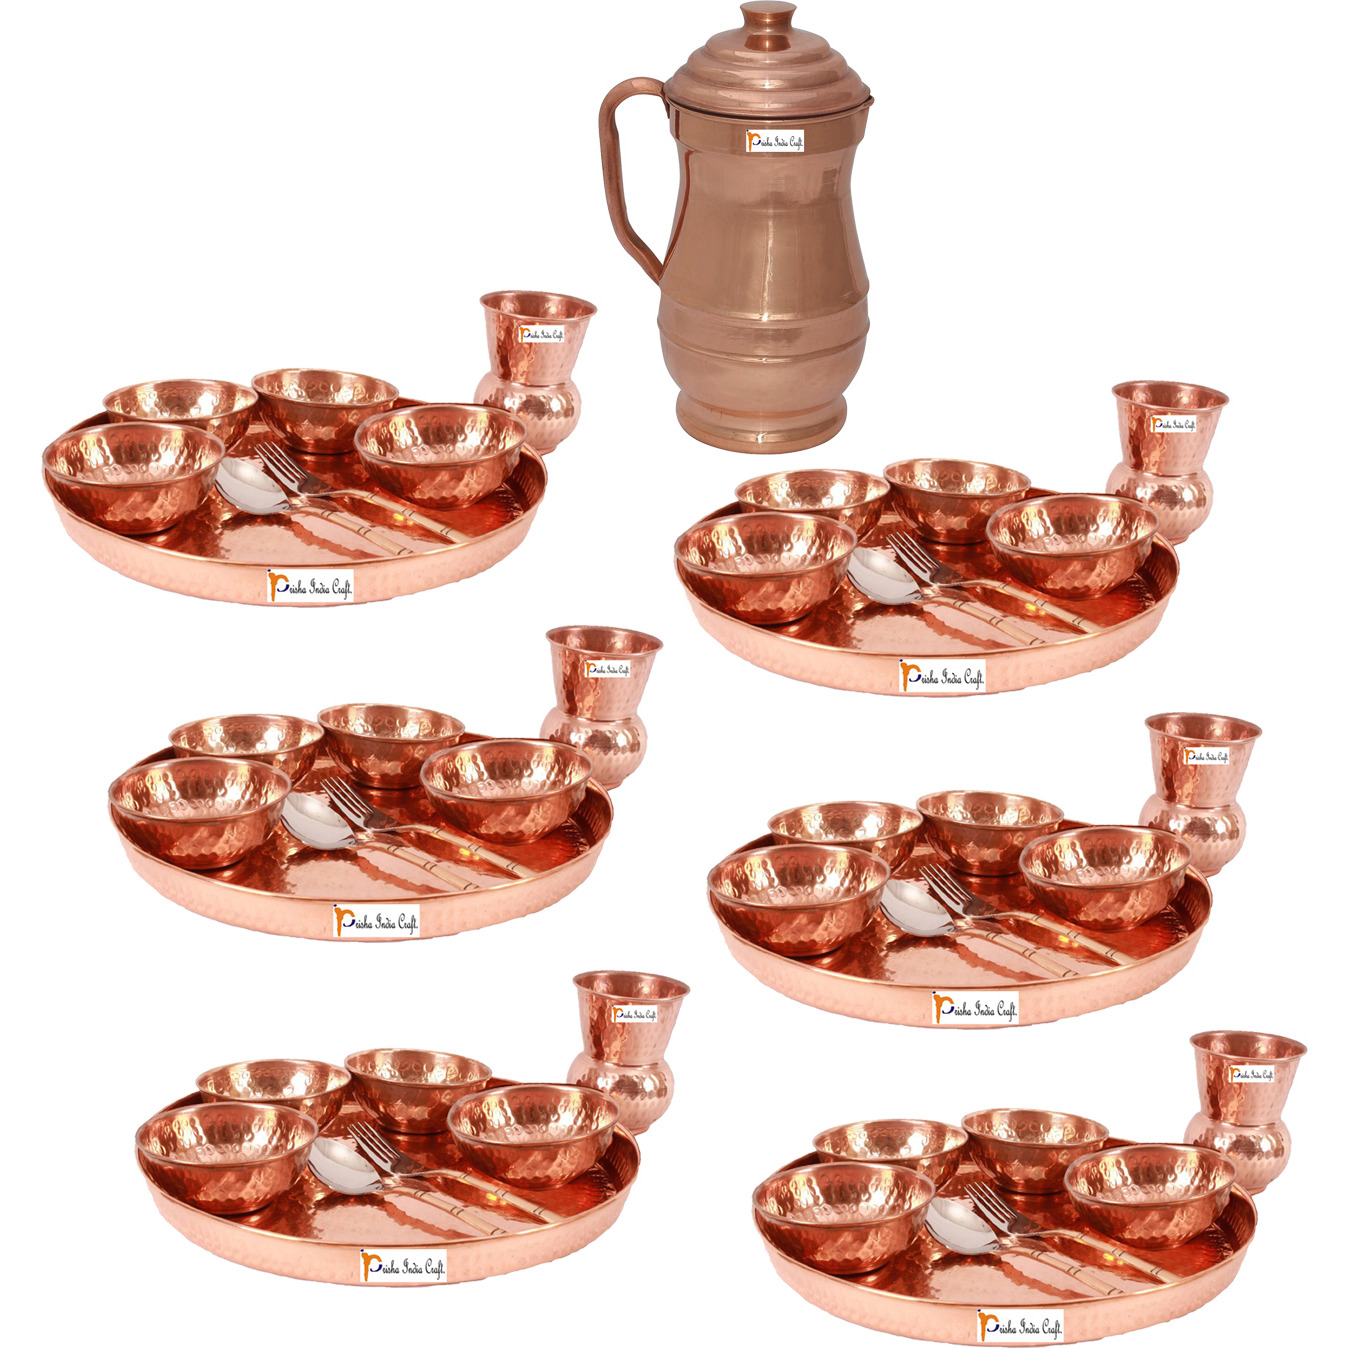 Prisha India Craft B. Set of 6 Dinnerware Traditional 100% Pure Copper Dinner Set of Thali Plate, Bowls, Glass and Spoon, Dia 12  With 1 Pure Copper Maharaja Pitcher Jug - Christmas Gift